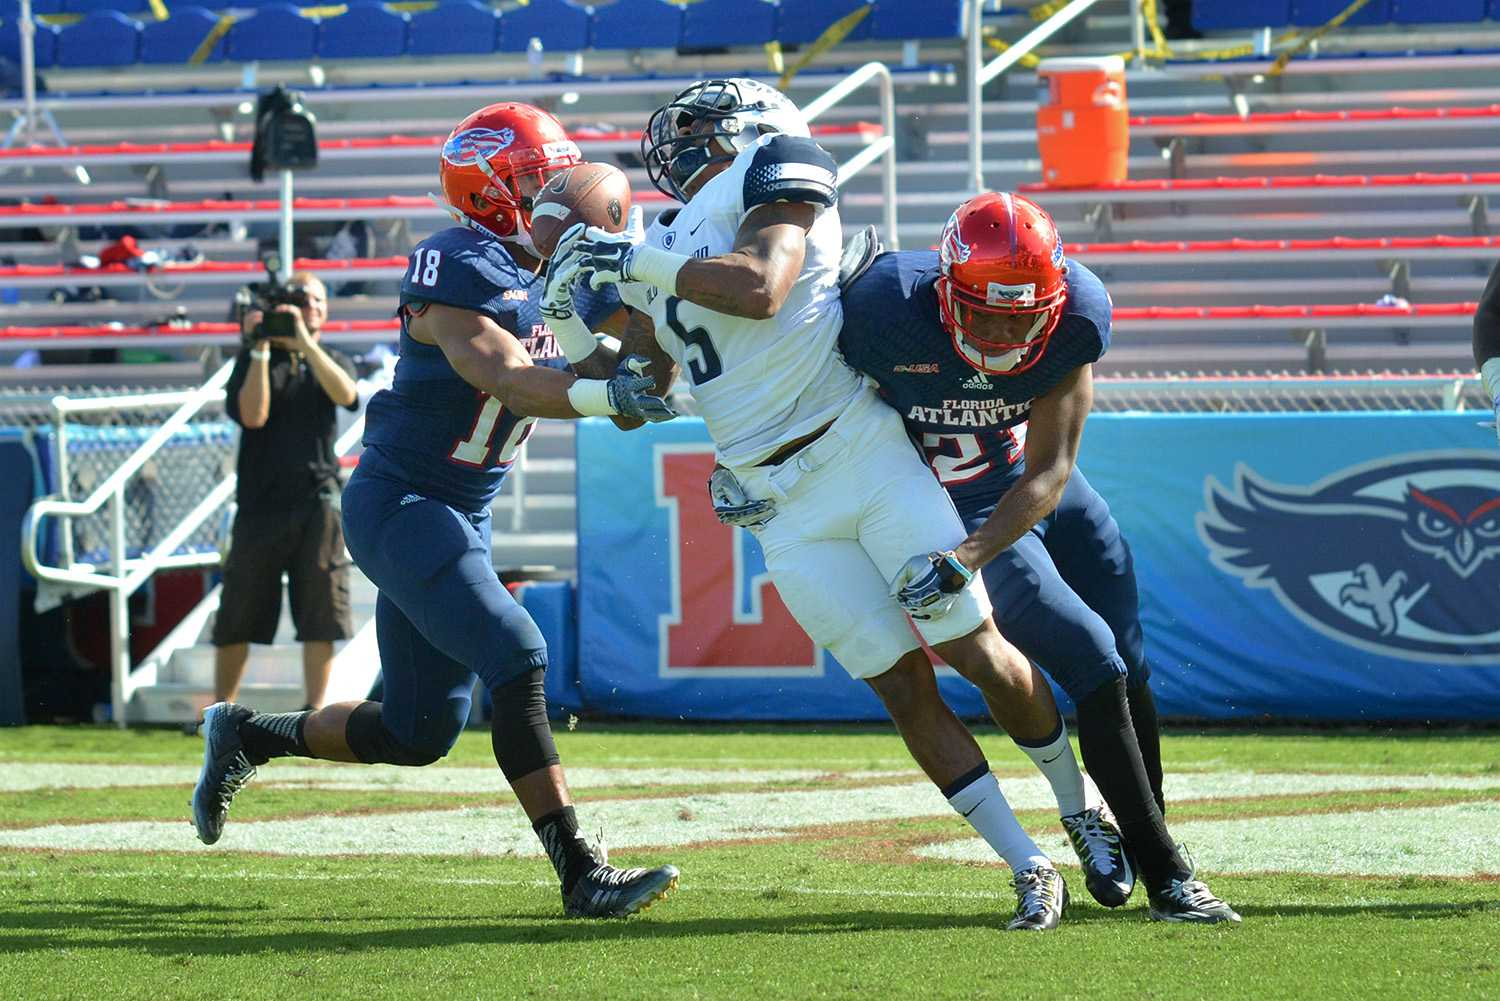 Owls senior cornerback D'Joun Smith hits Monarchs wide receiver Antonio Vaughan hard, forcing an incompletion in the second quarter during Saturday's game. Smith tallied up 5 tackles and 2 break-ups during his final game at FAU.